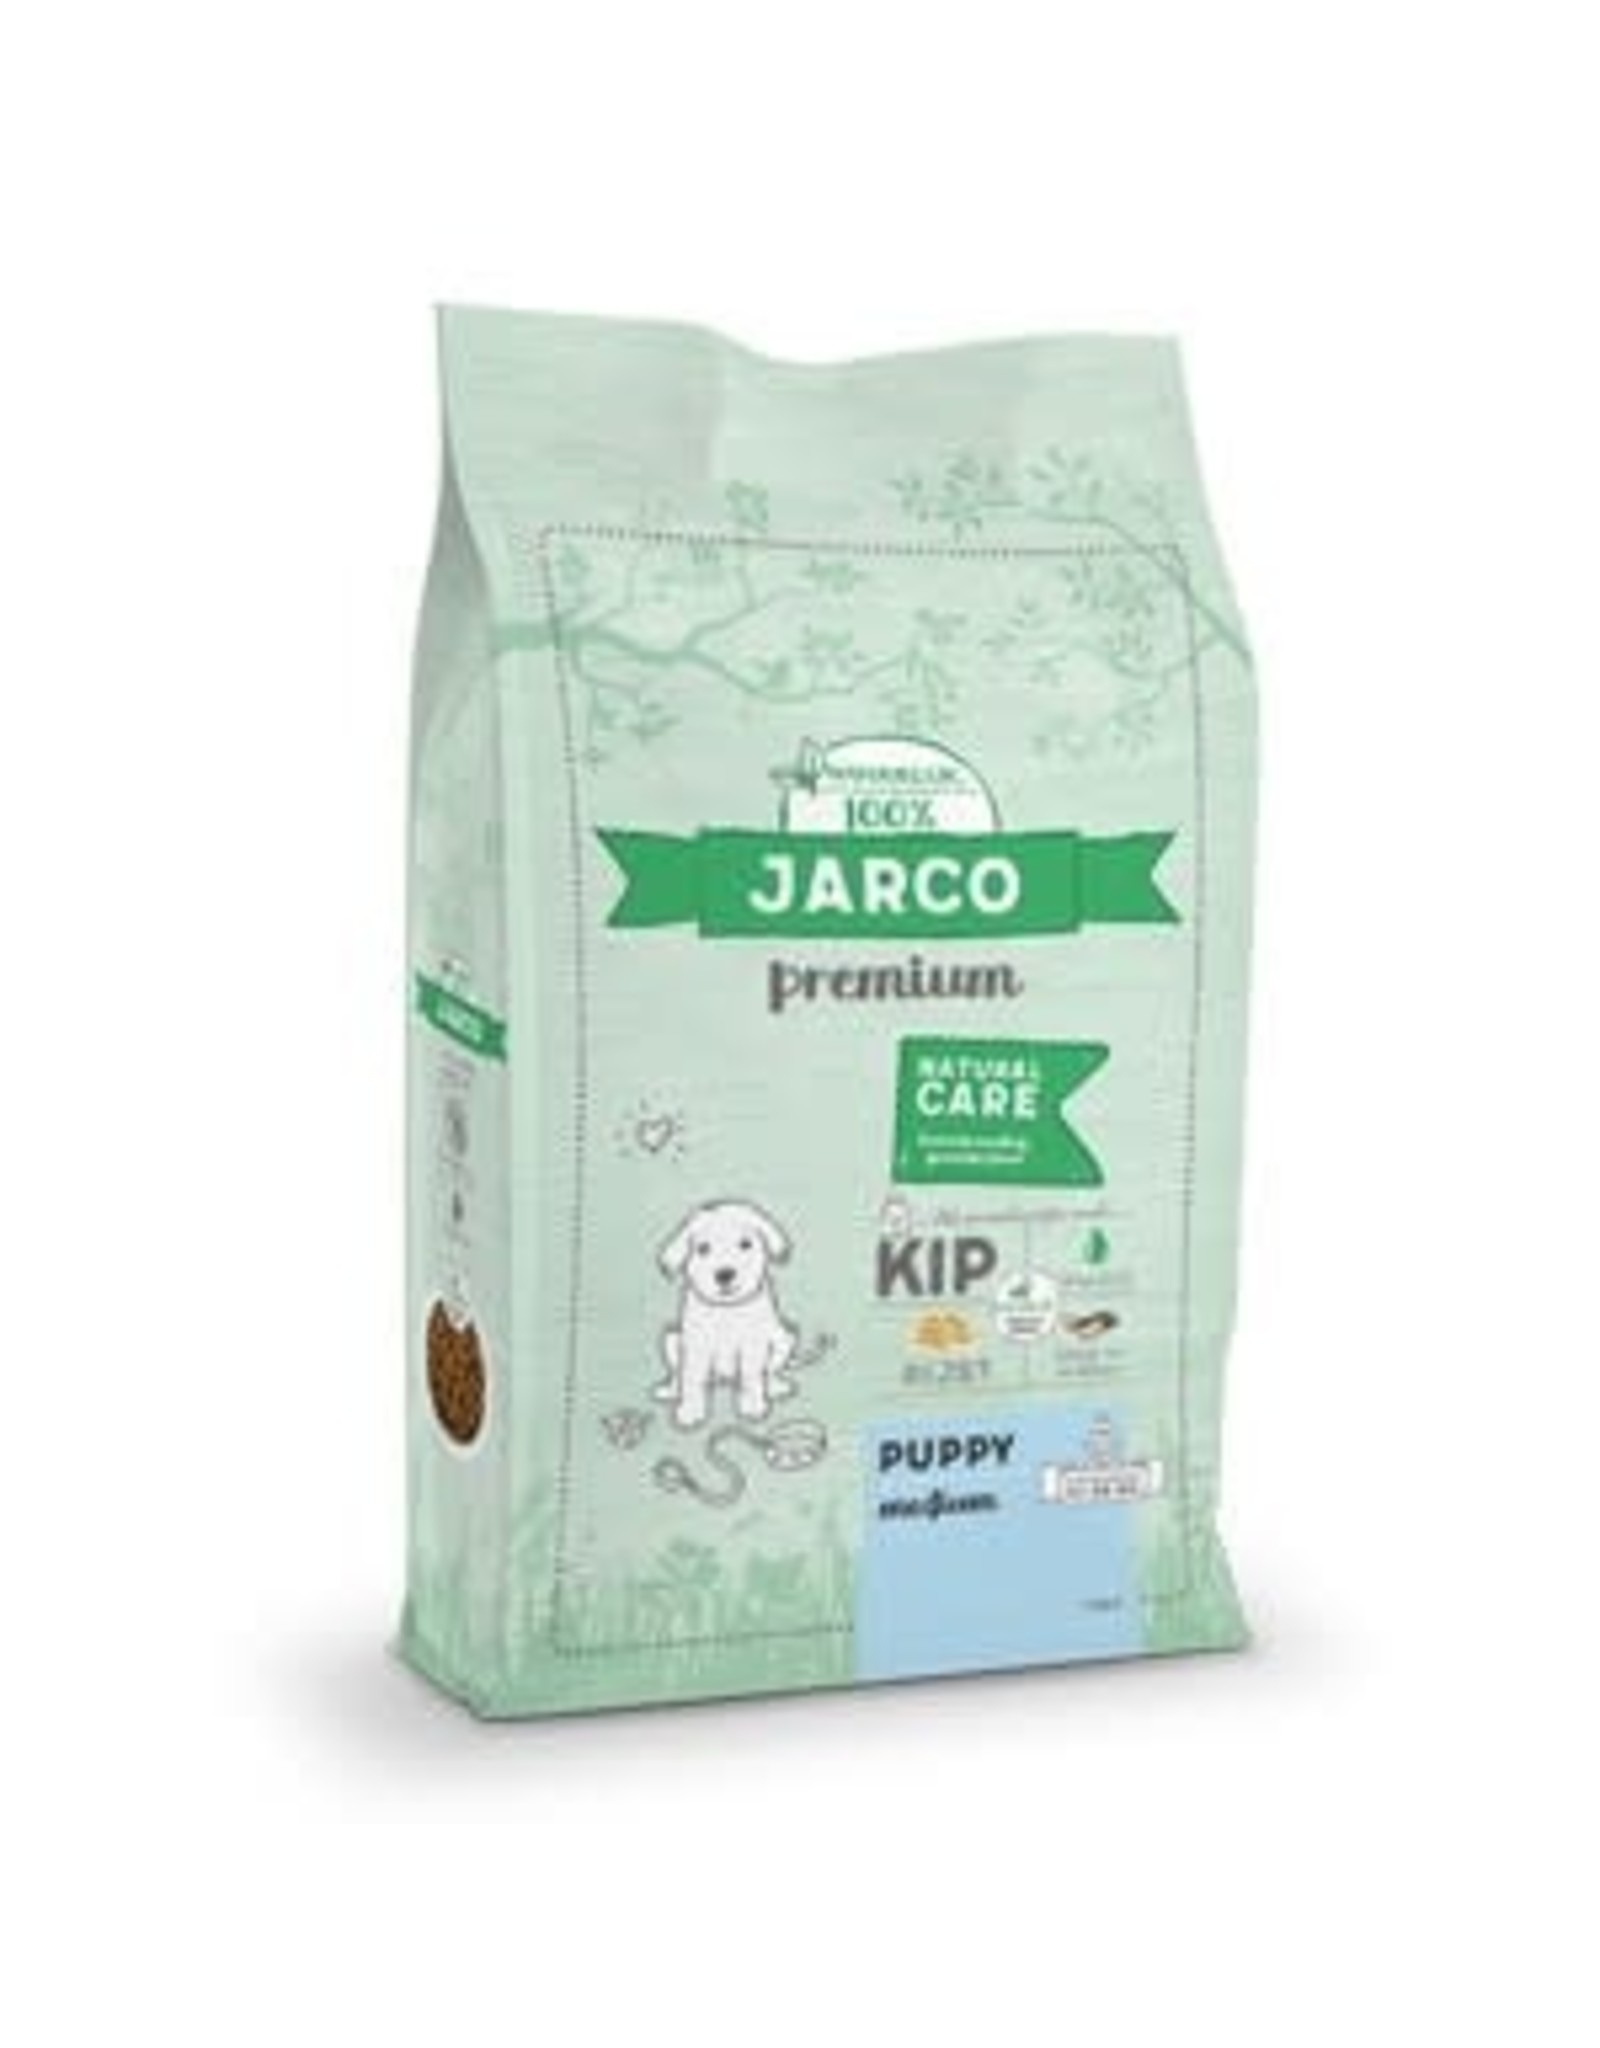 Jarco Medium Puppy 11-25 Kg - Kip - 2Kg